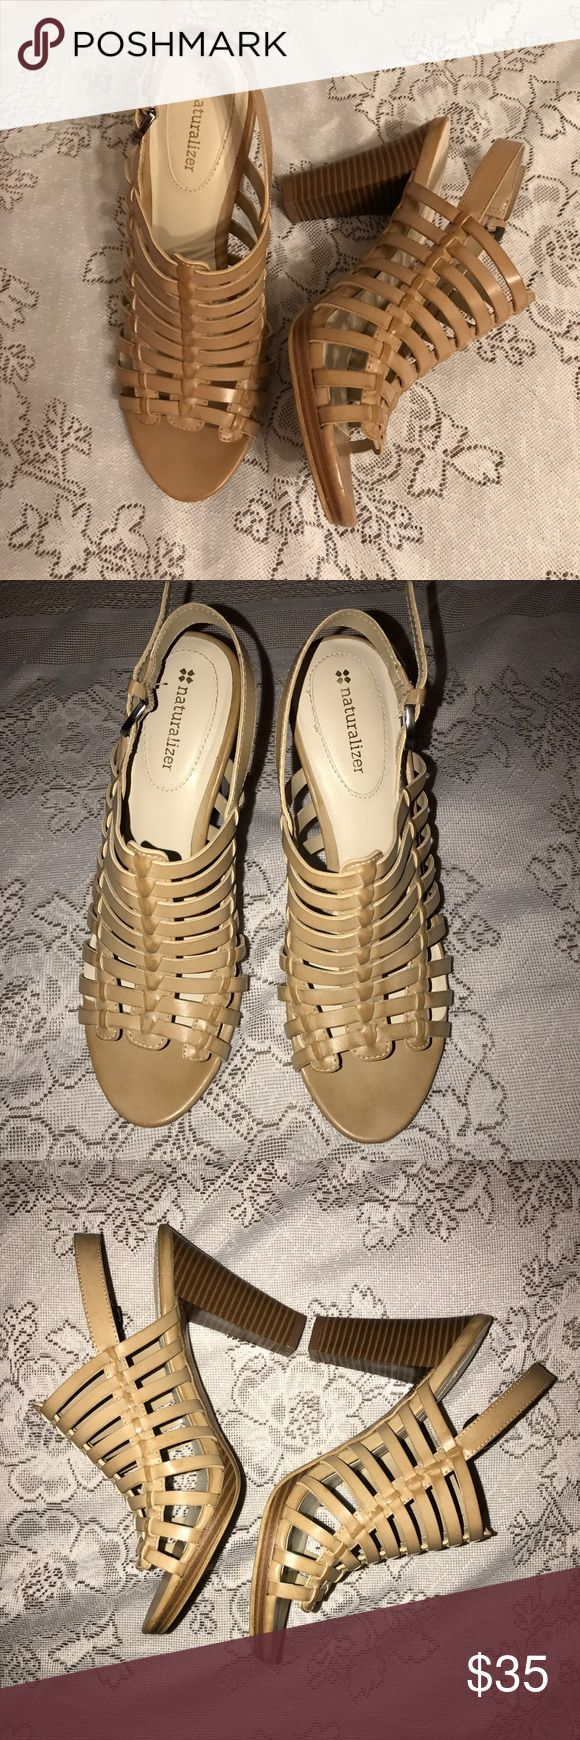 Naturalizer Tan Cream Heels Sandals Size 7.5 Back strap heels. Beautiful and comfortable shoes. I bought it here but the heels are too high so I'm reselling them. These shoes are in great shape. Naturalizer Shoes Heels